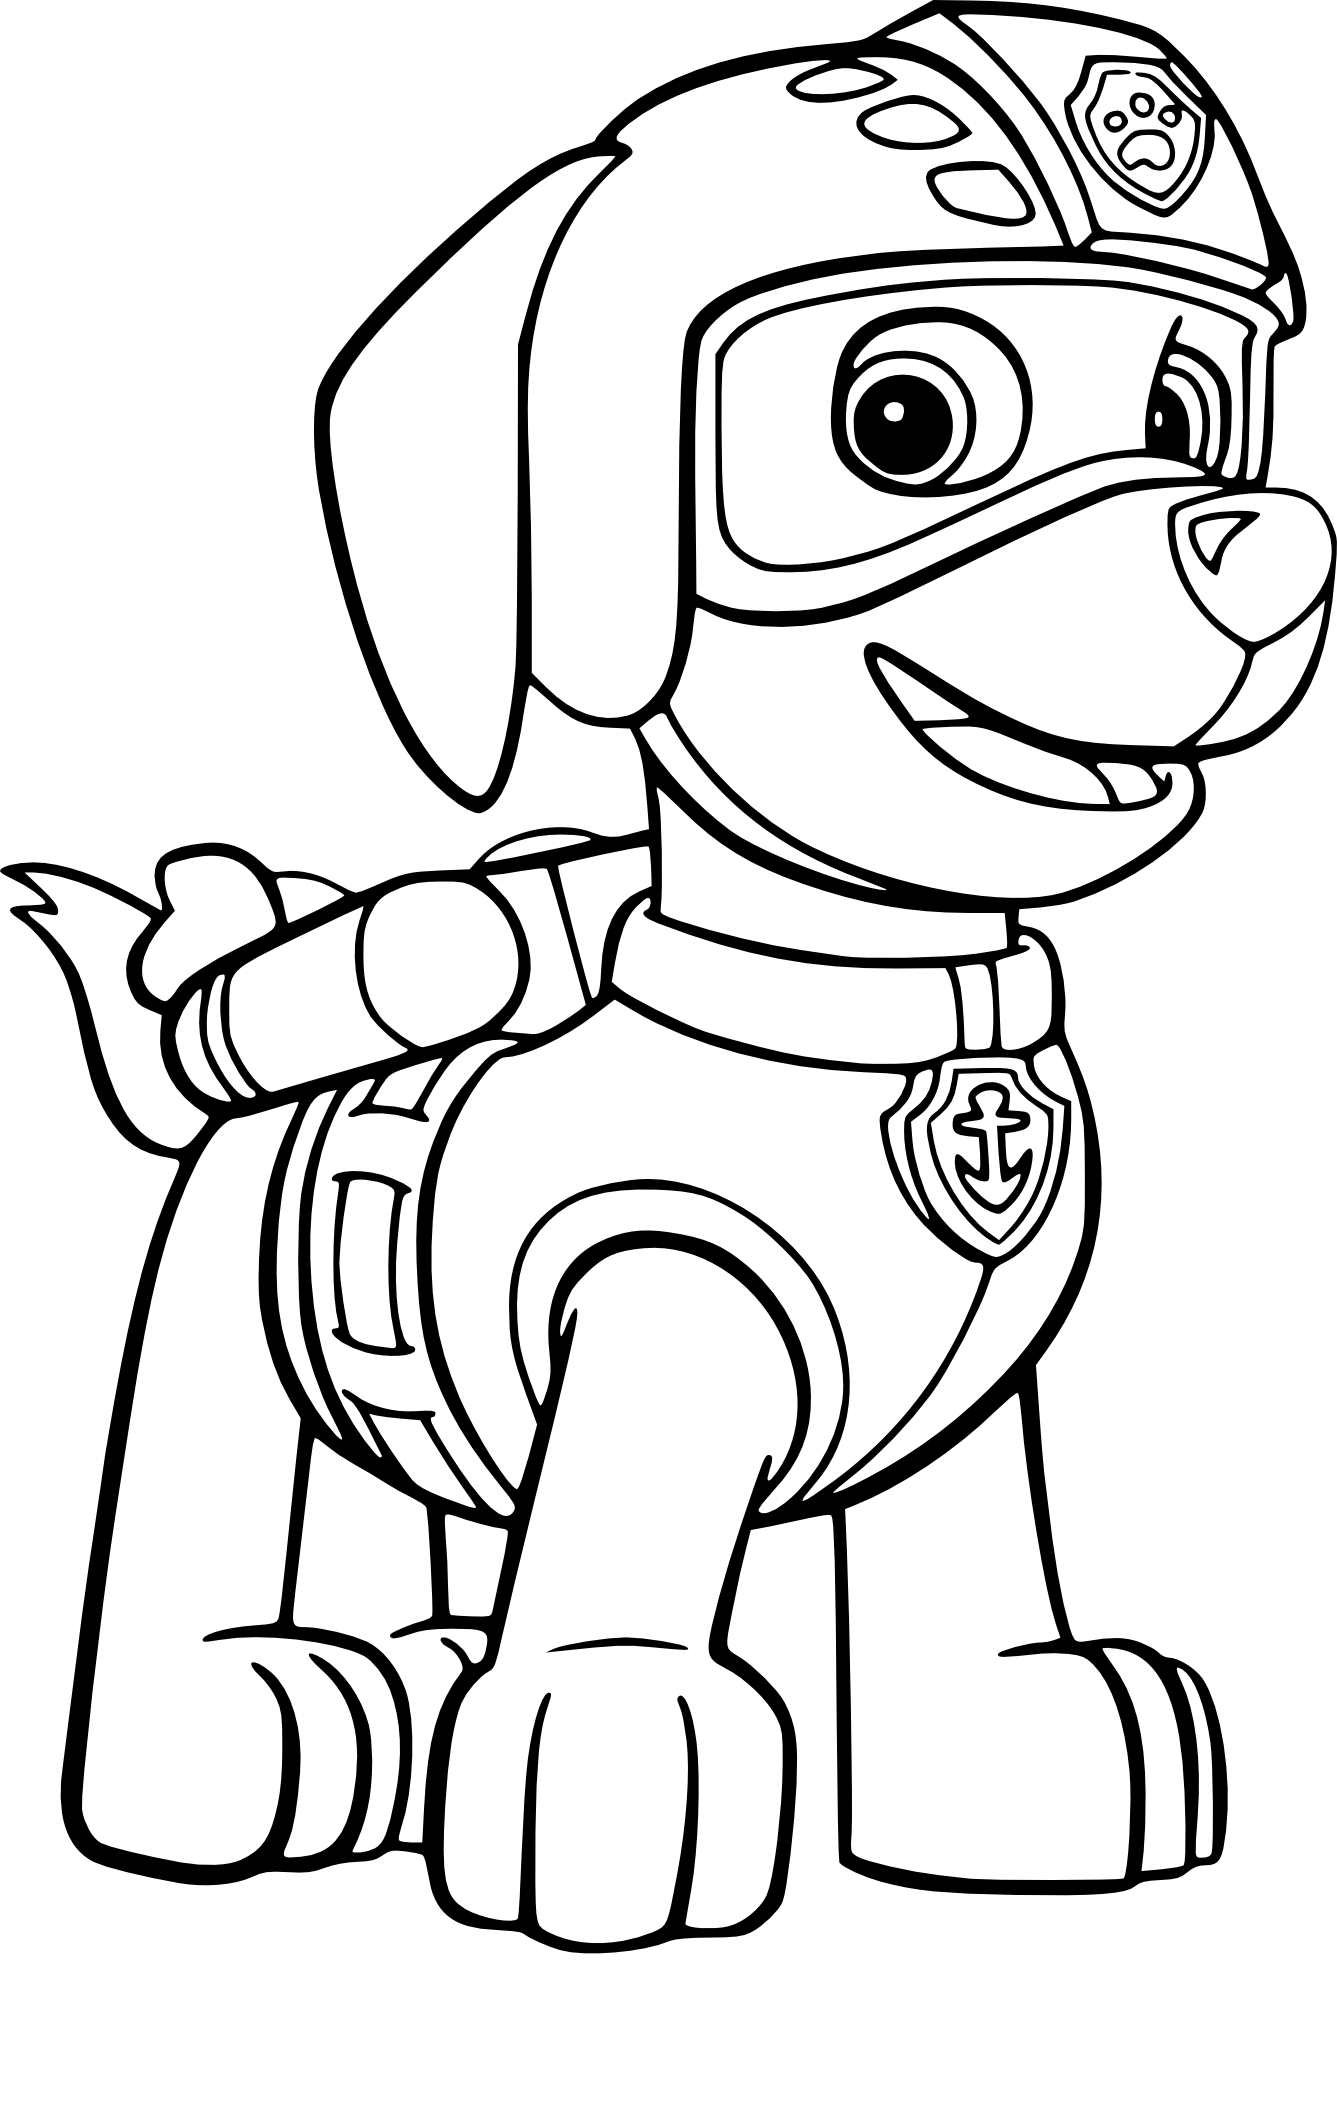 rocky paw patrol coloring page - 3